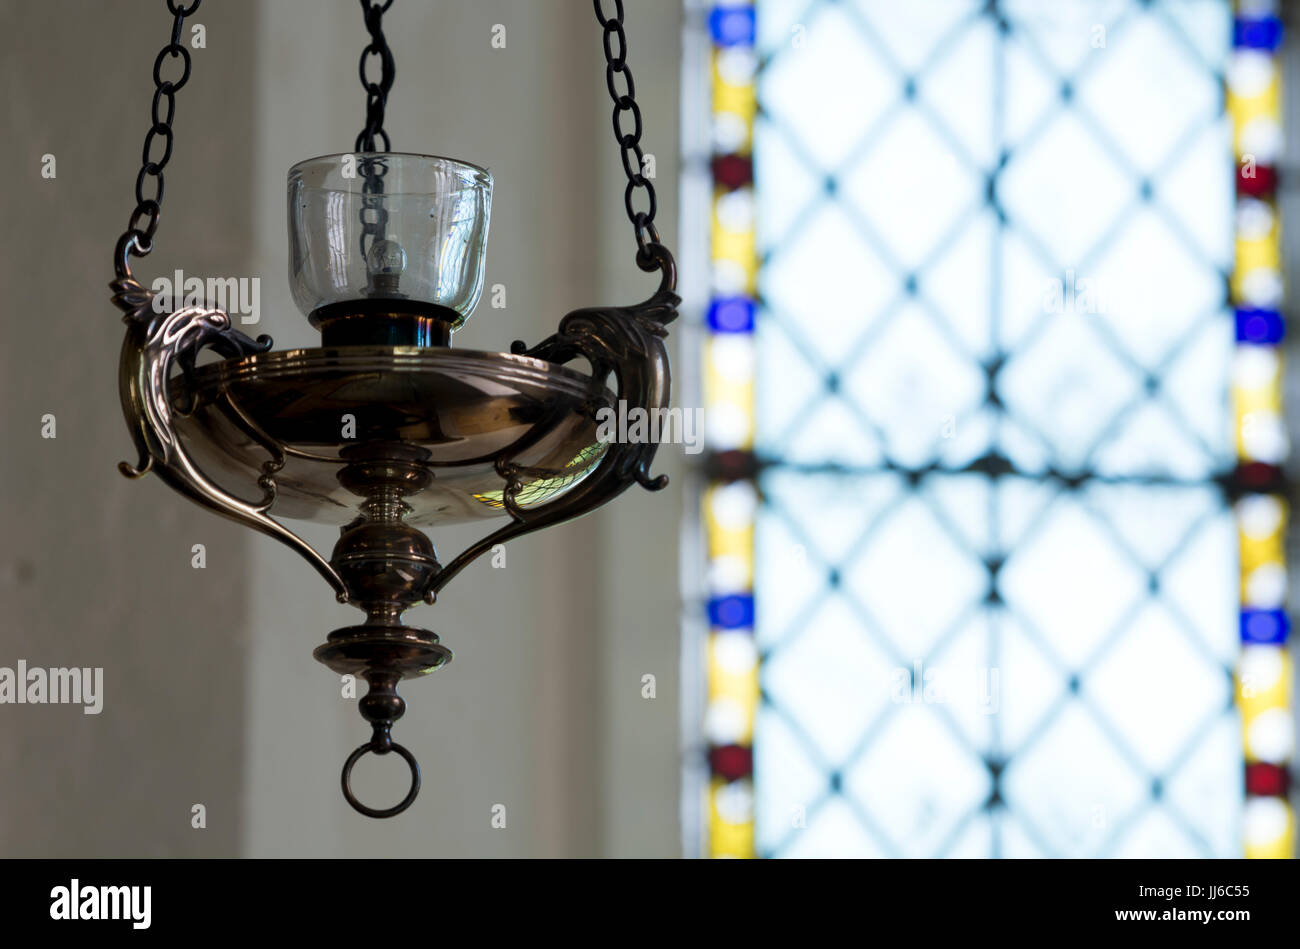 A sanctuary lamp in St. Mary`s Church, Ardley, Oxfordshire, UK - Stock Image